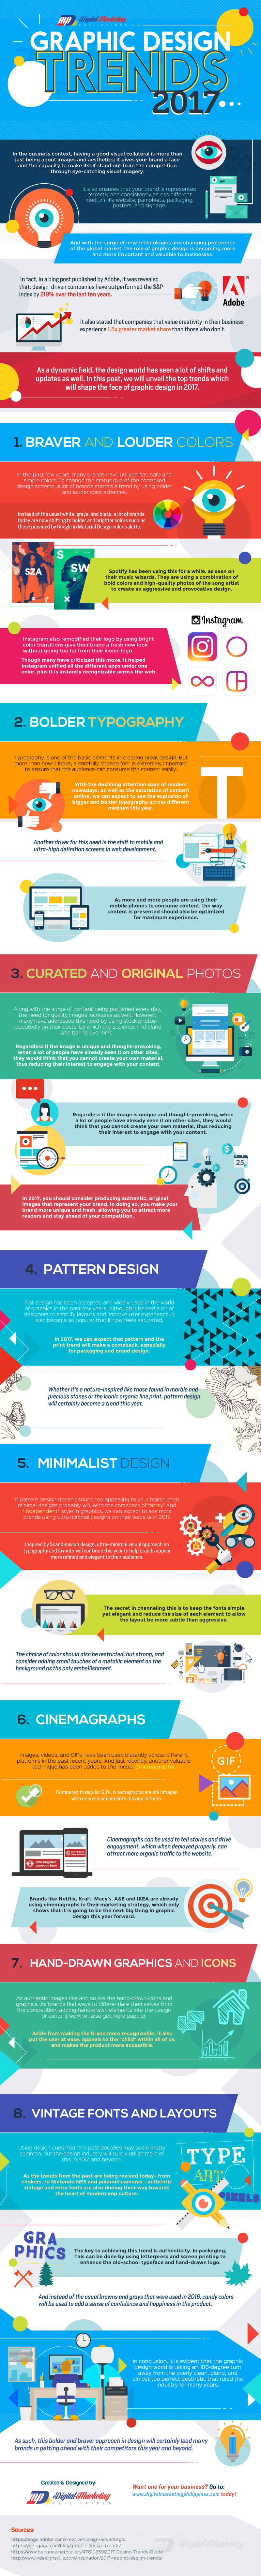 The Top 8 Graphic Design Trends in 2017 (Infographic) - An Infographic from Digital Marketing Philippines